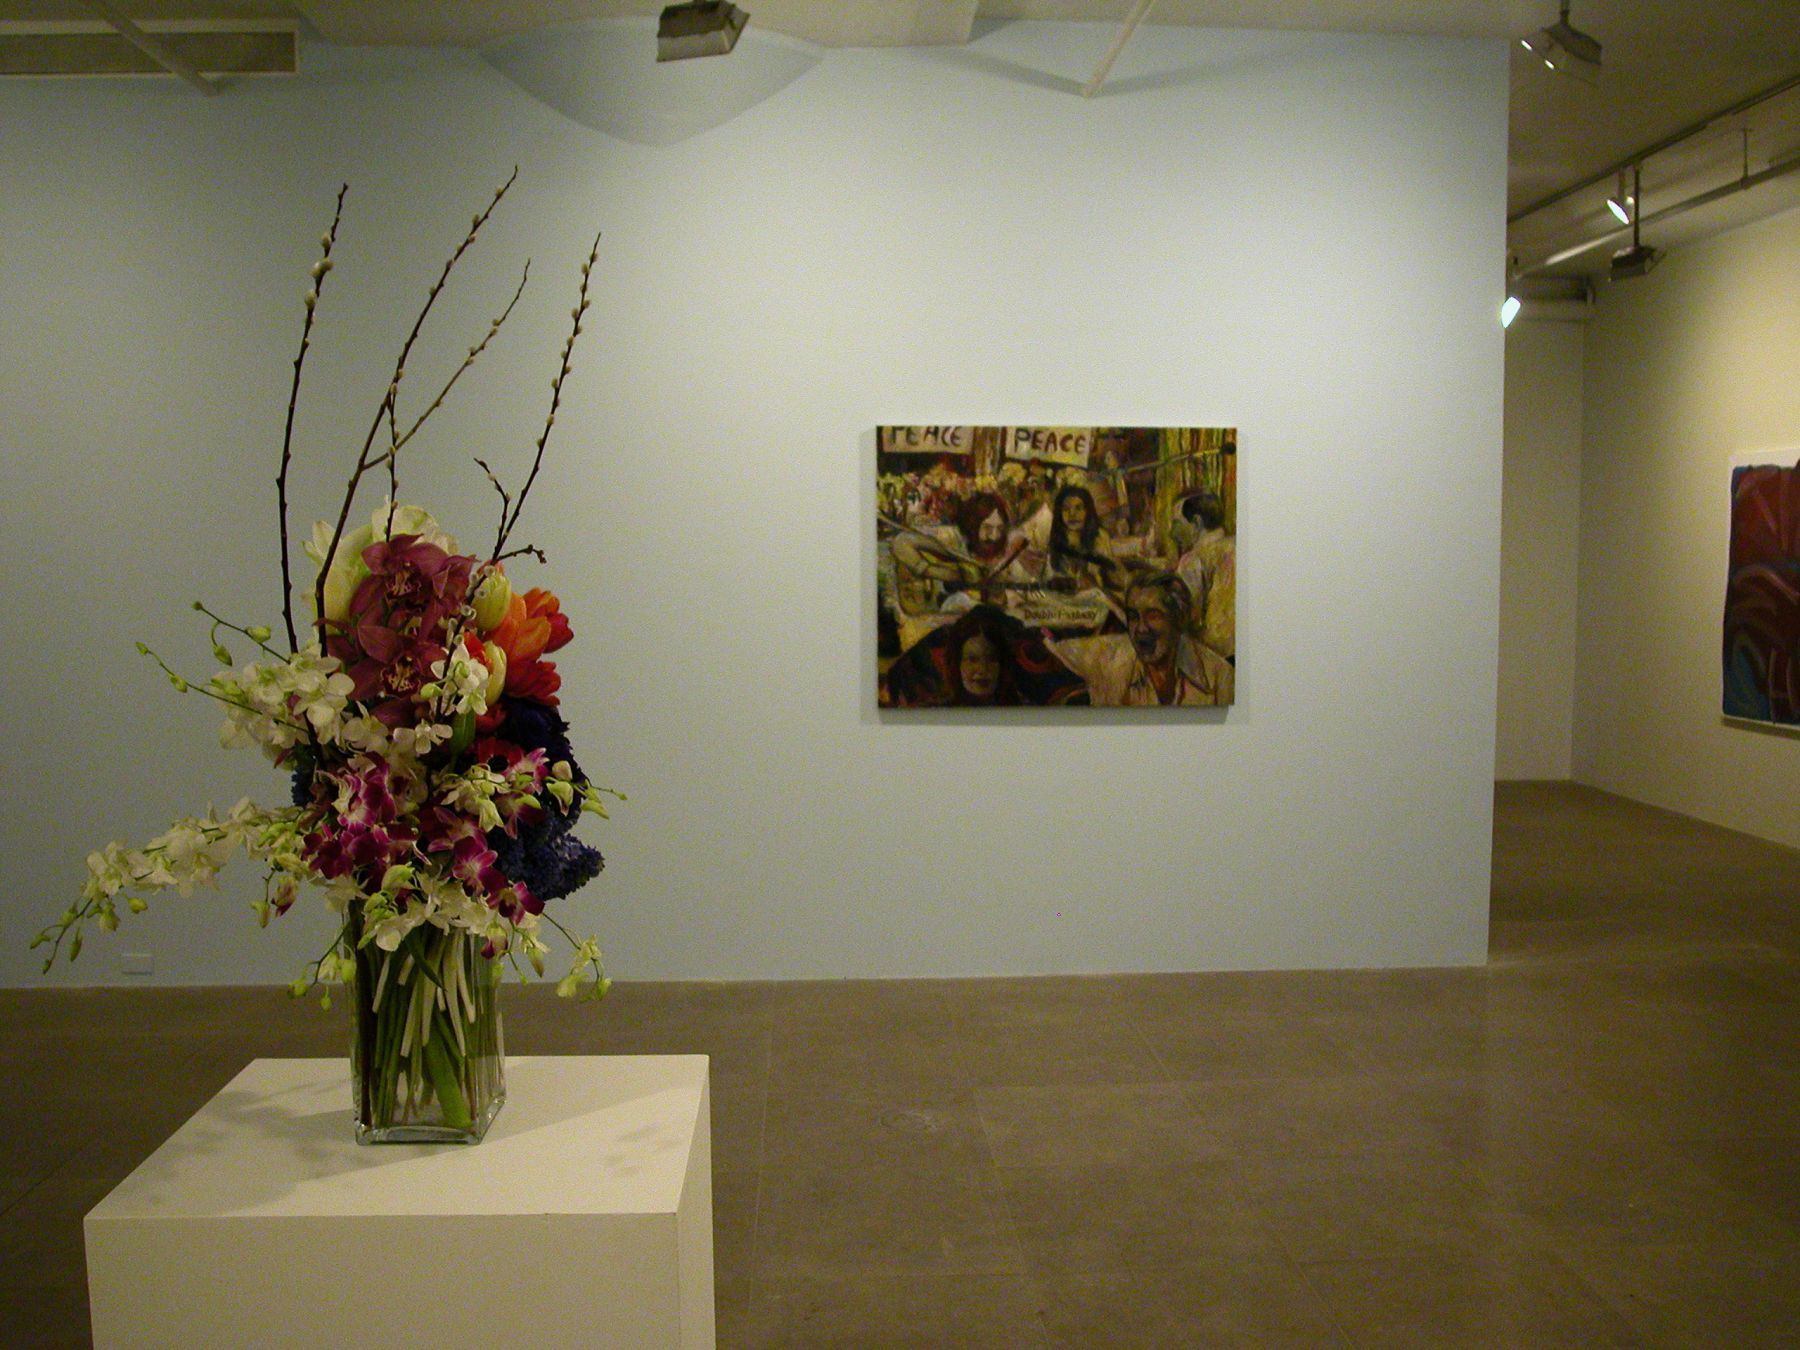 Installation view, Salon, Greene Naftali, New York, 2006